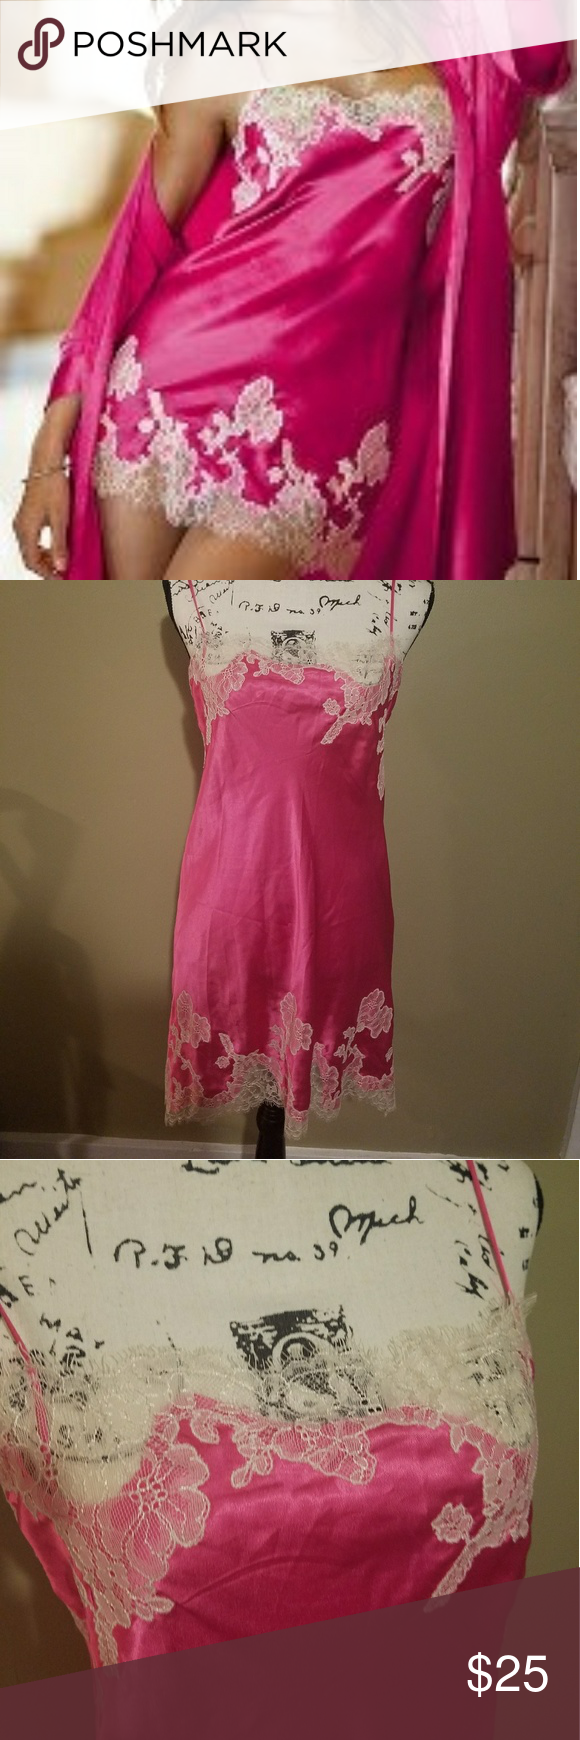 nwt! victoria secret pink satin lace night gown nwt | pink satin